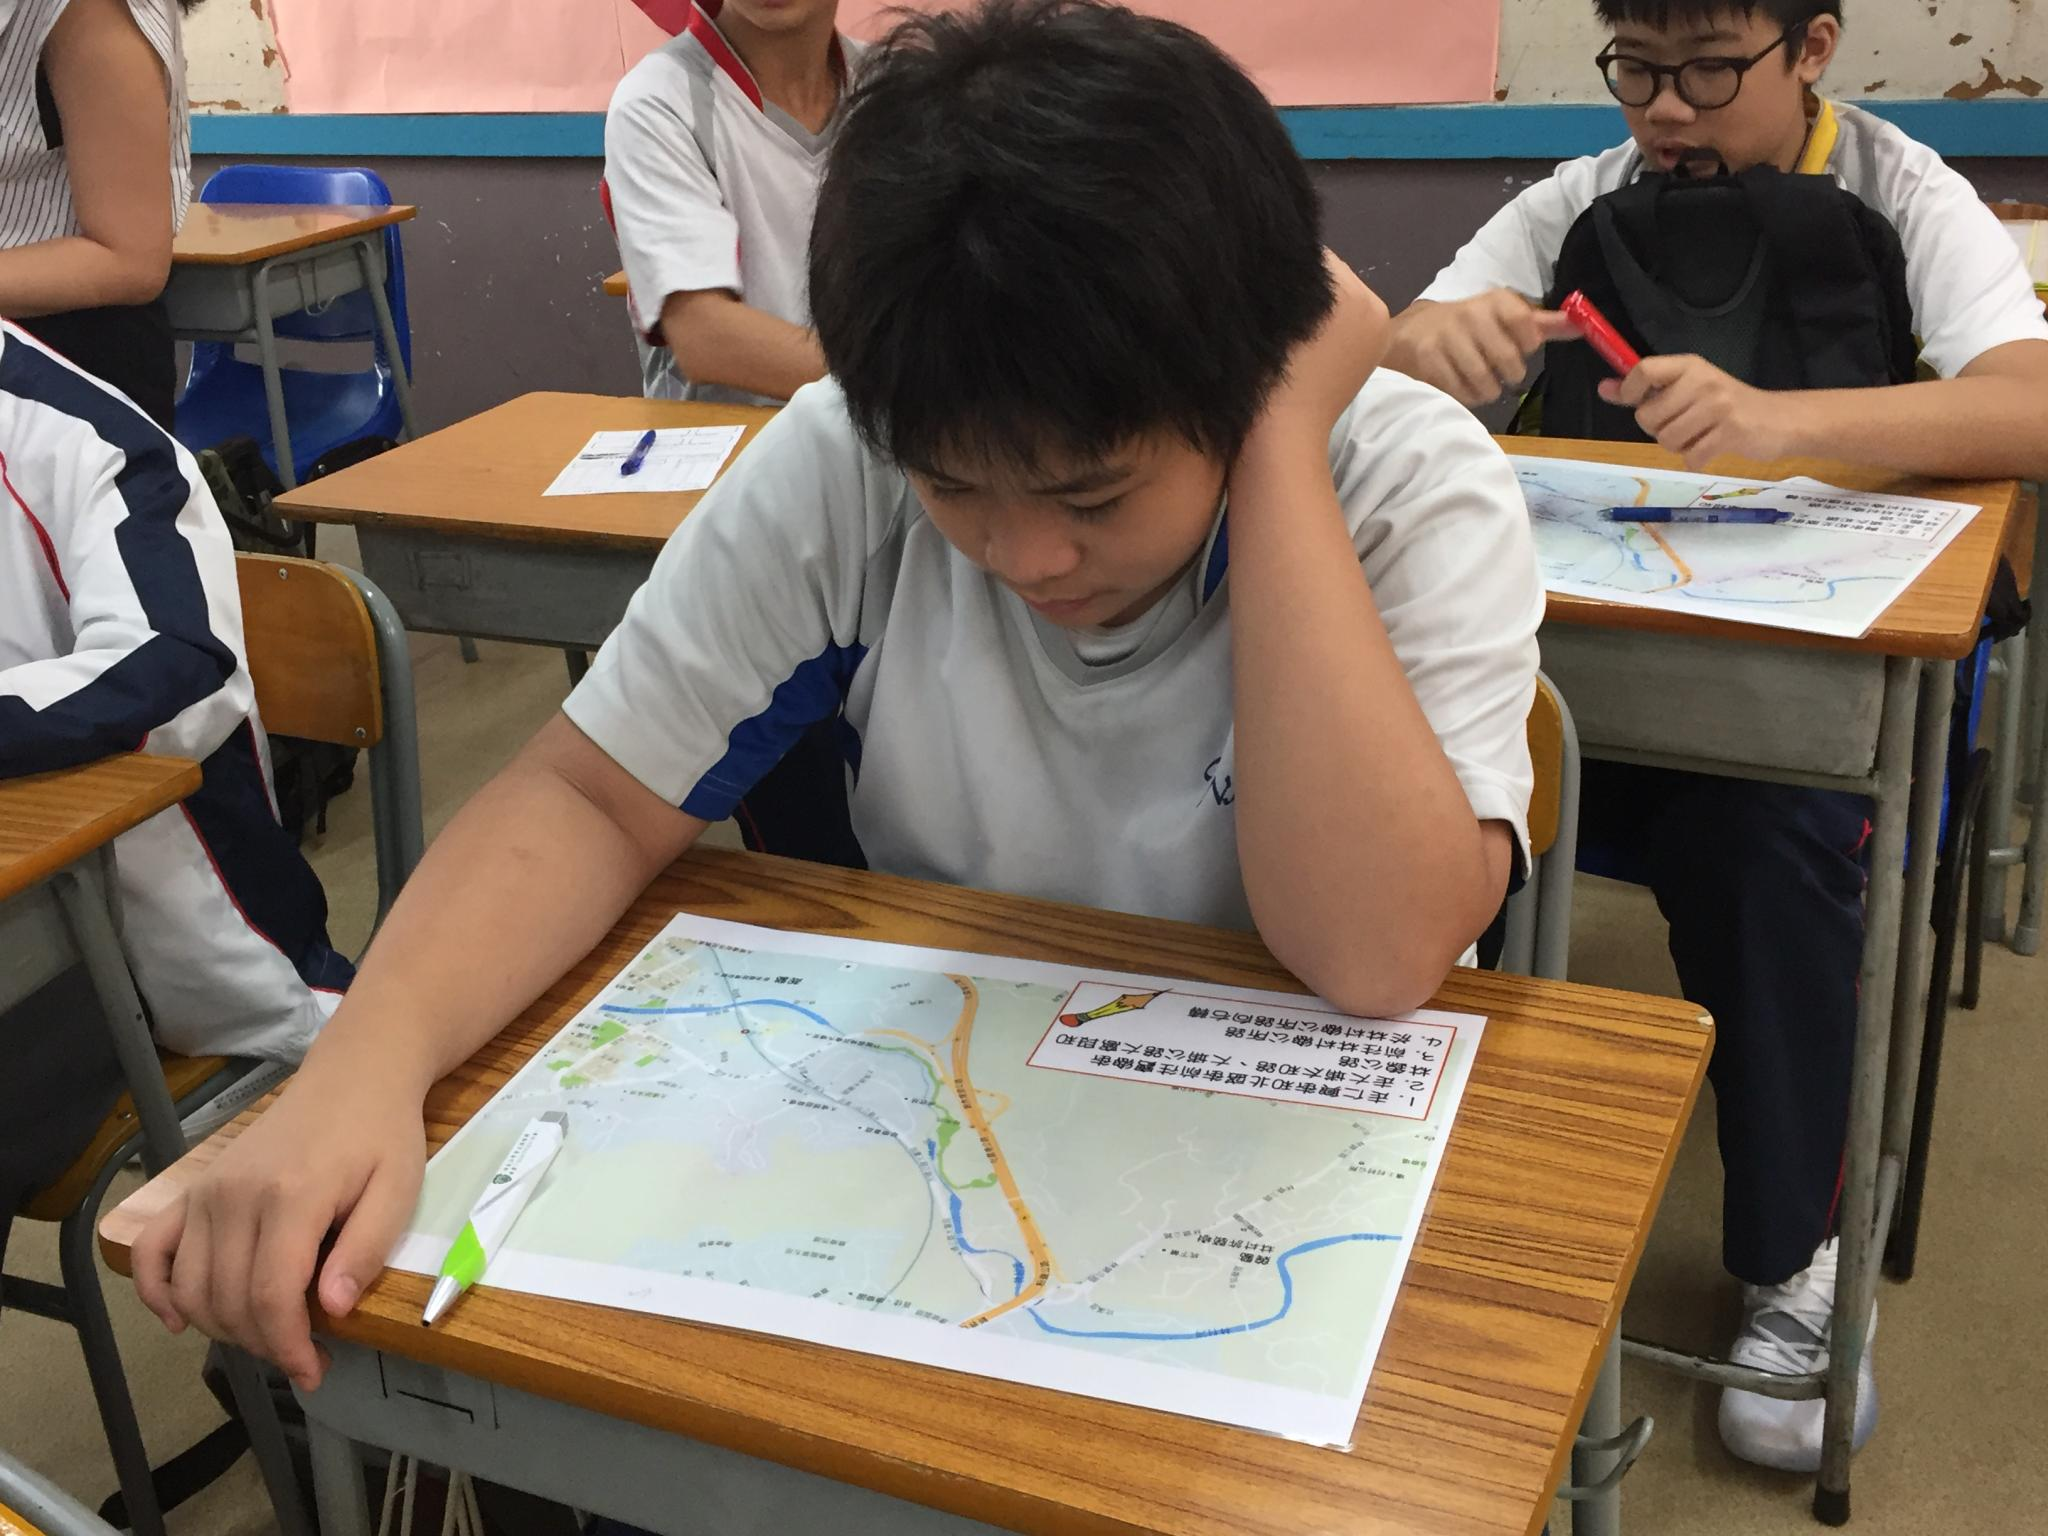 Students were doing map reading.